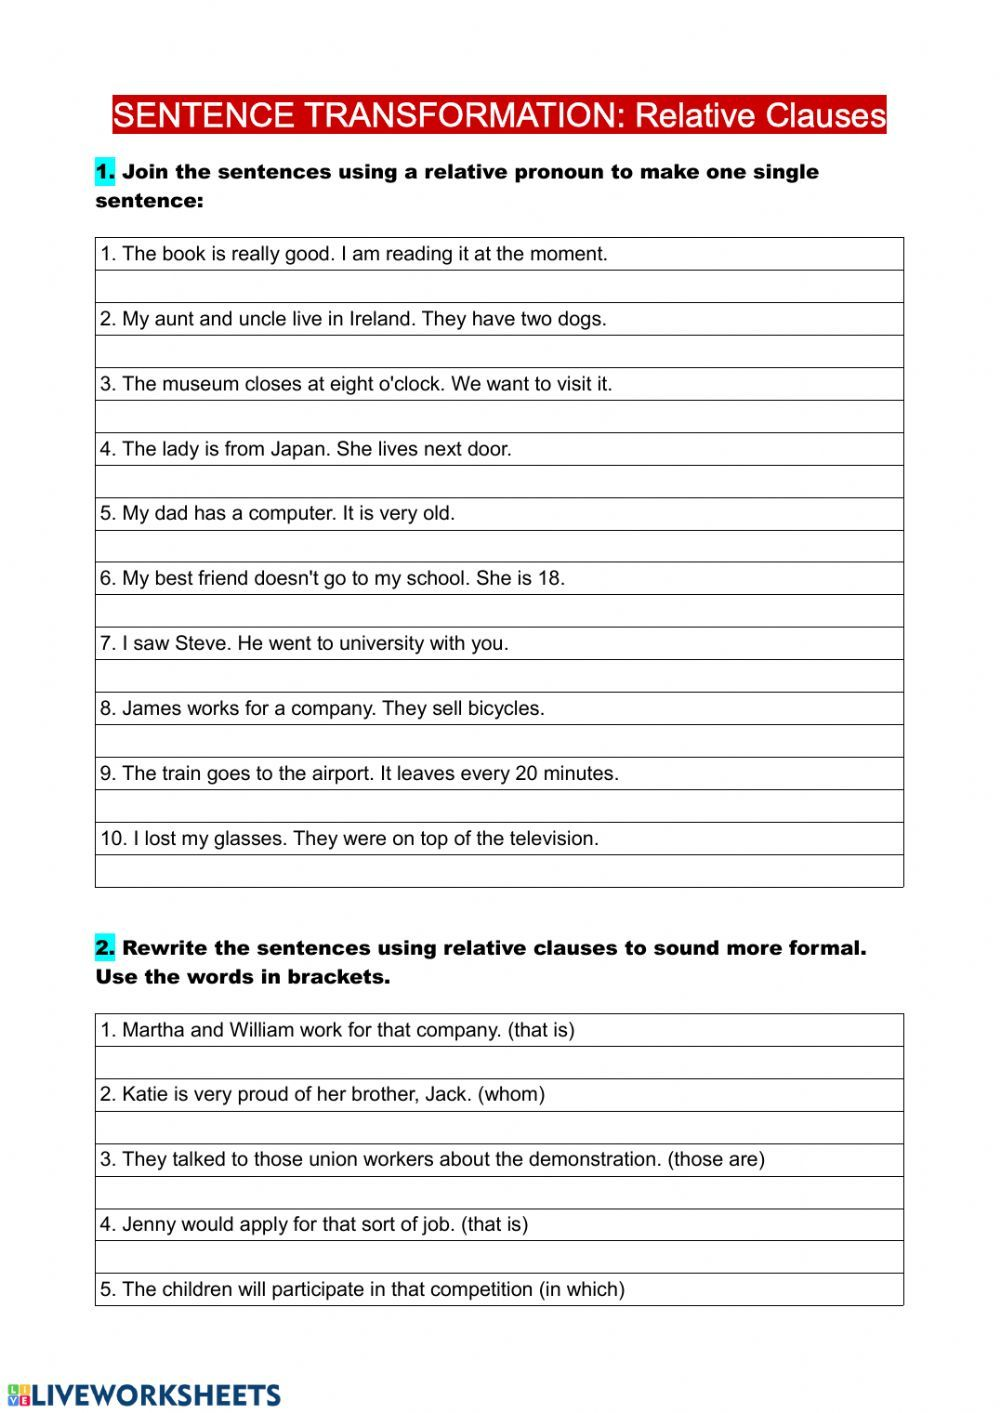 Relative Clause Interactive And Downloadable Worksheet You Can Do The Exercise Online Or Download A Pdf Sentence Worksheets Defining Moment Essay